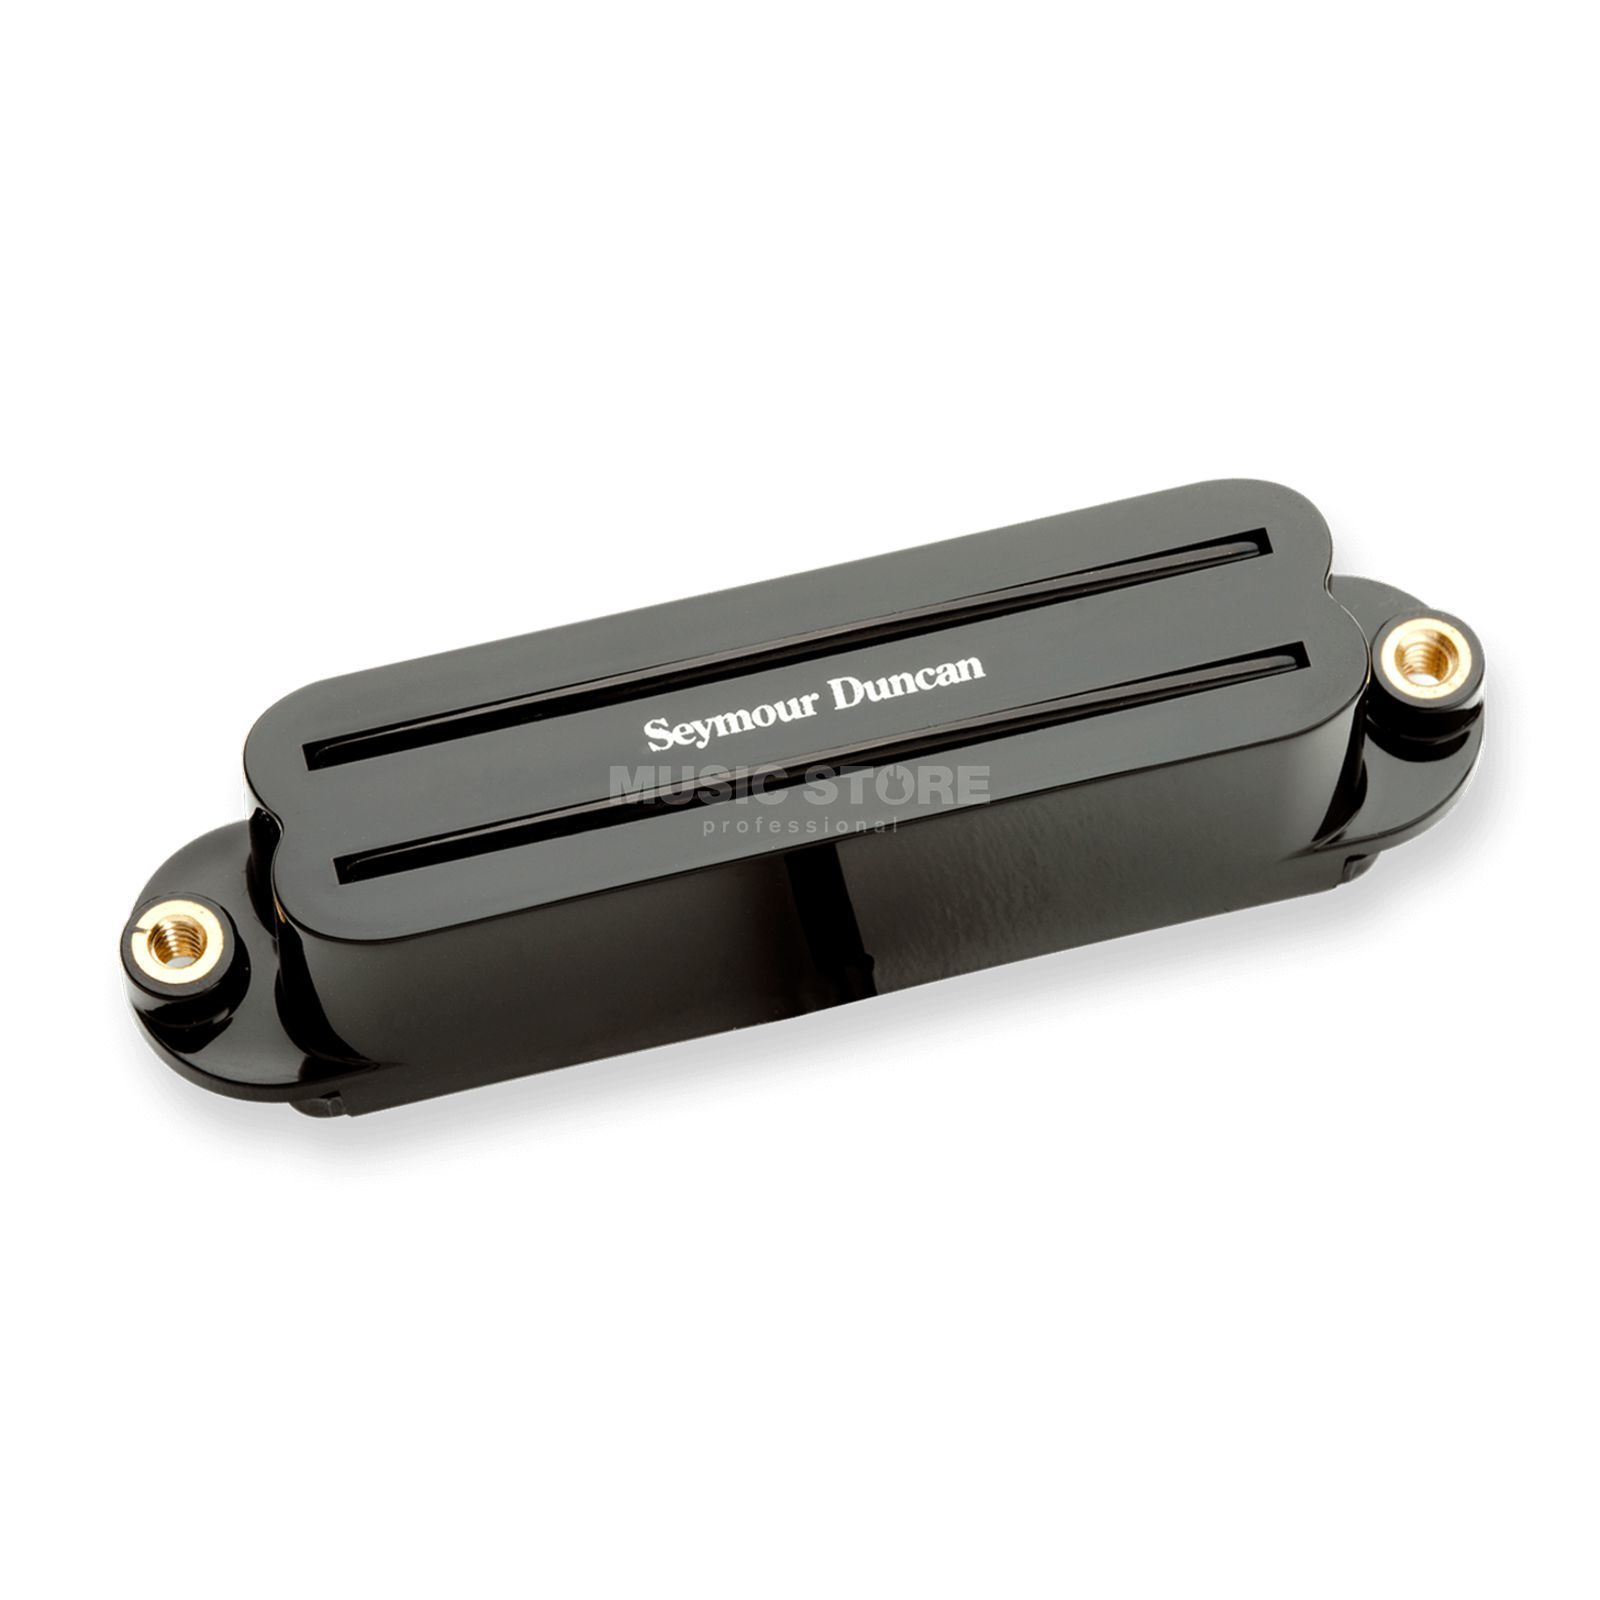 Seymour Duncan Strat Cool Rail Bridge black 4-phase Product Image